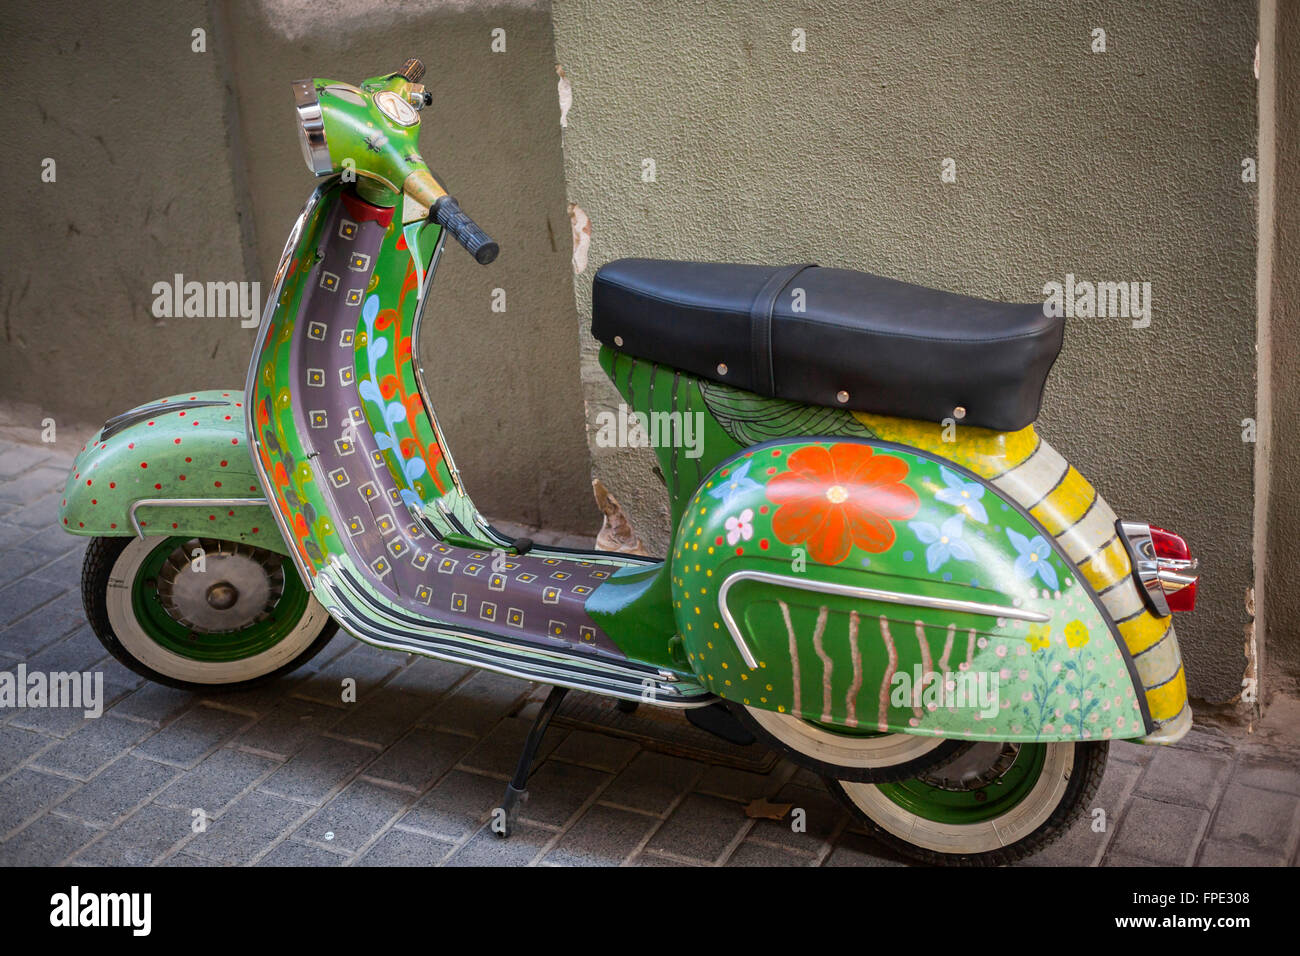 Motorcycle Vespa painted flowers in Palma de Mallorca,Balearic Islands,Spain. - Stock Image